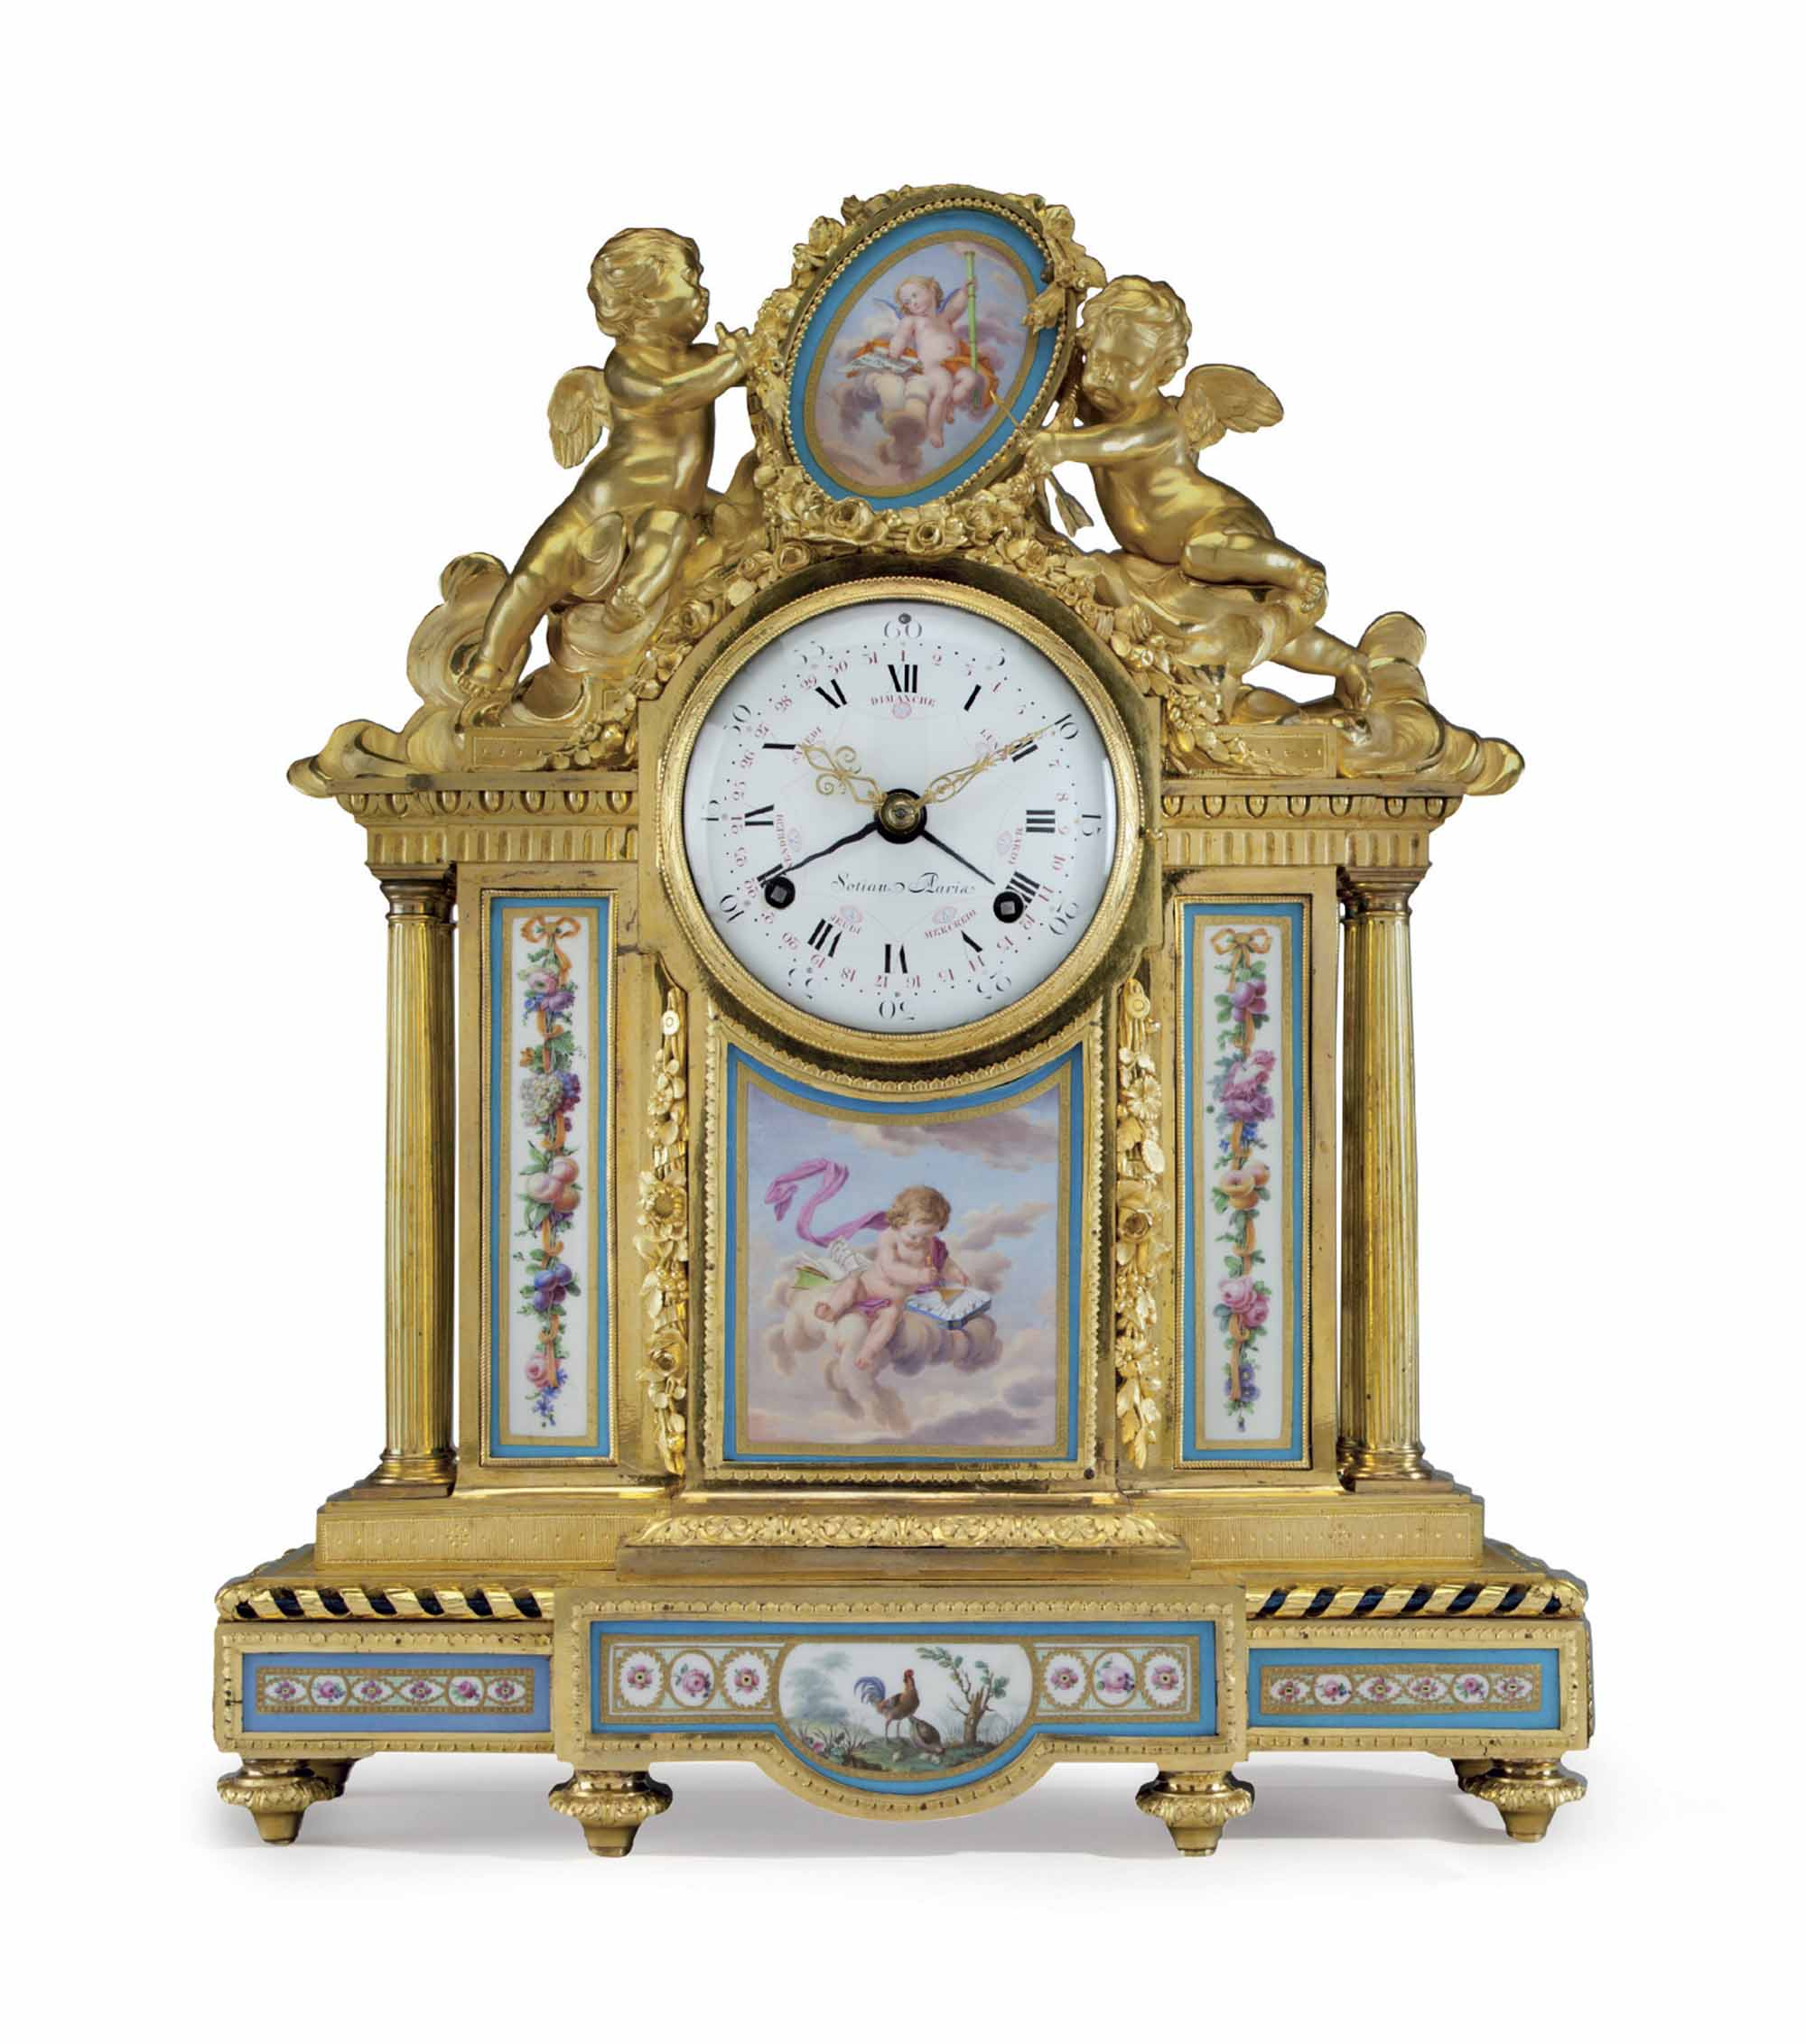 A LOUIS XVI ORMOLU AND SEVRES PORCELAIN MANTEL CLOCK